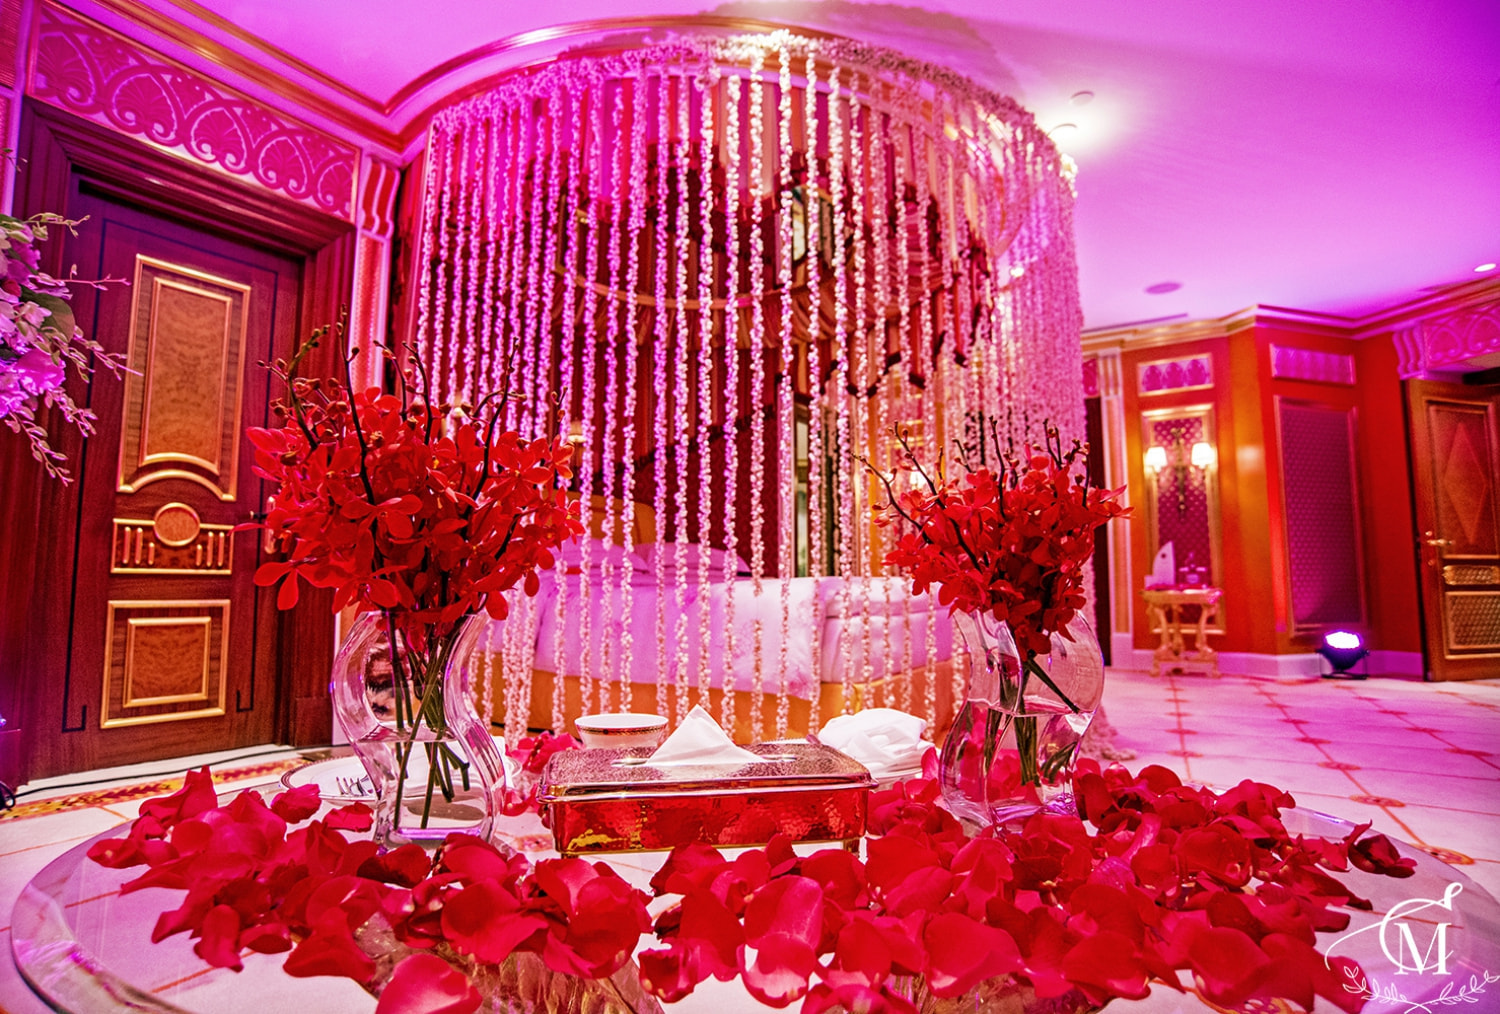 Royal Suite Room In Burj Al Arab Was Decorated With Light, Amazing Flowers,  Ice Sculptures And, Of Course, A Lot Of Gifts.